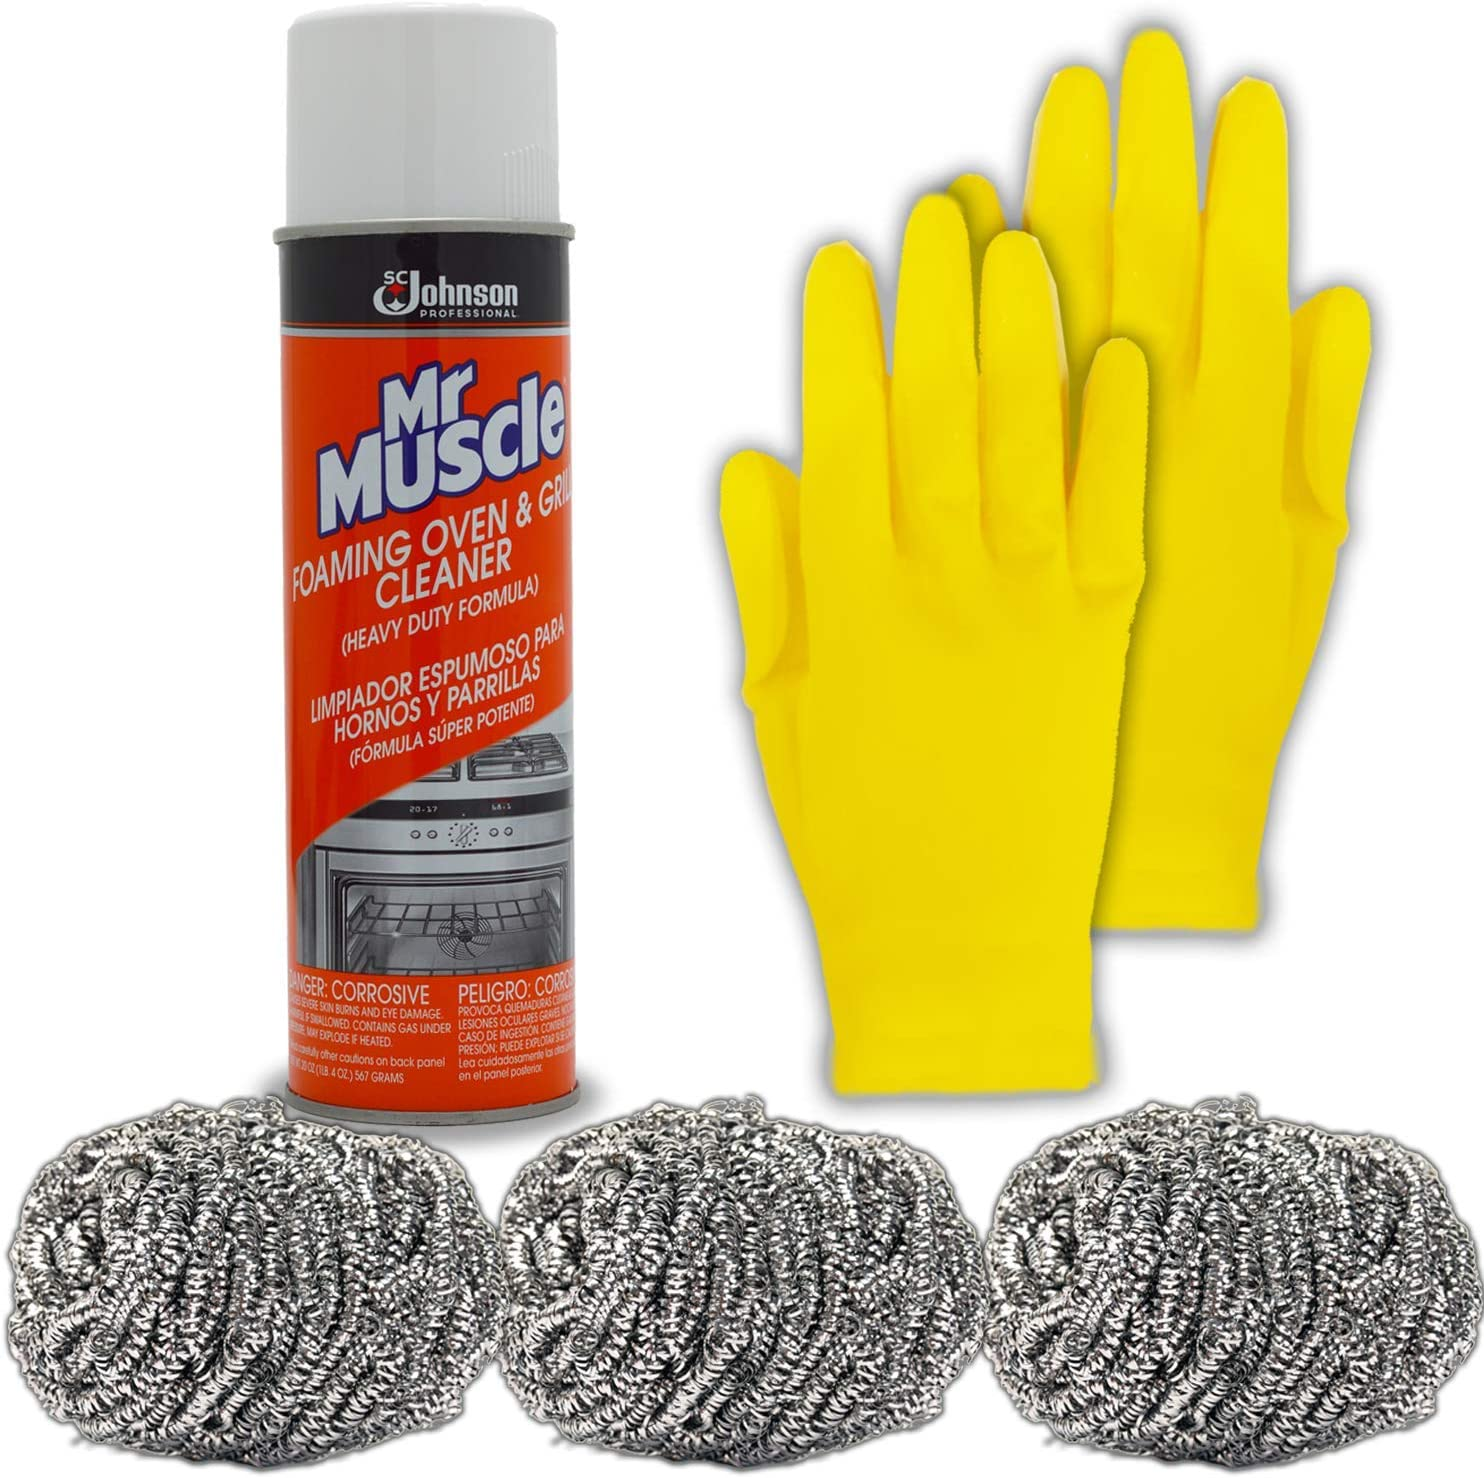 Mr Muscle Oven And Grill Cleaner Spray Kit: 20 Oz Mister Muscle Commercial Heavy Duty Professional Formula, 3 Stainless Steel Wool Scrubber Pads, Medium Long Reusable Rubber Gloves For Cleaning.